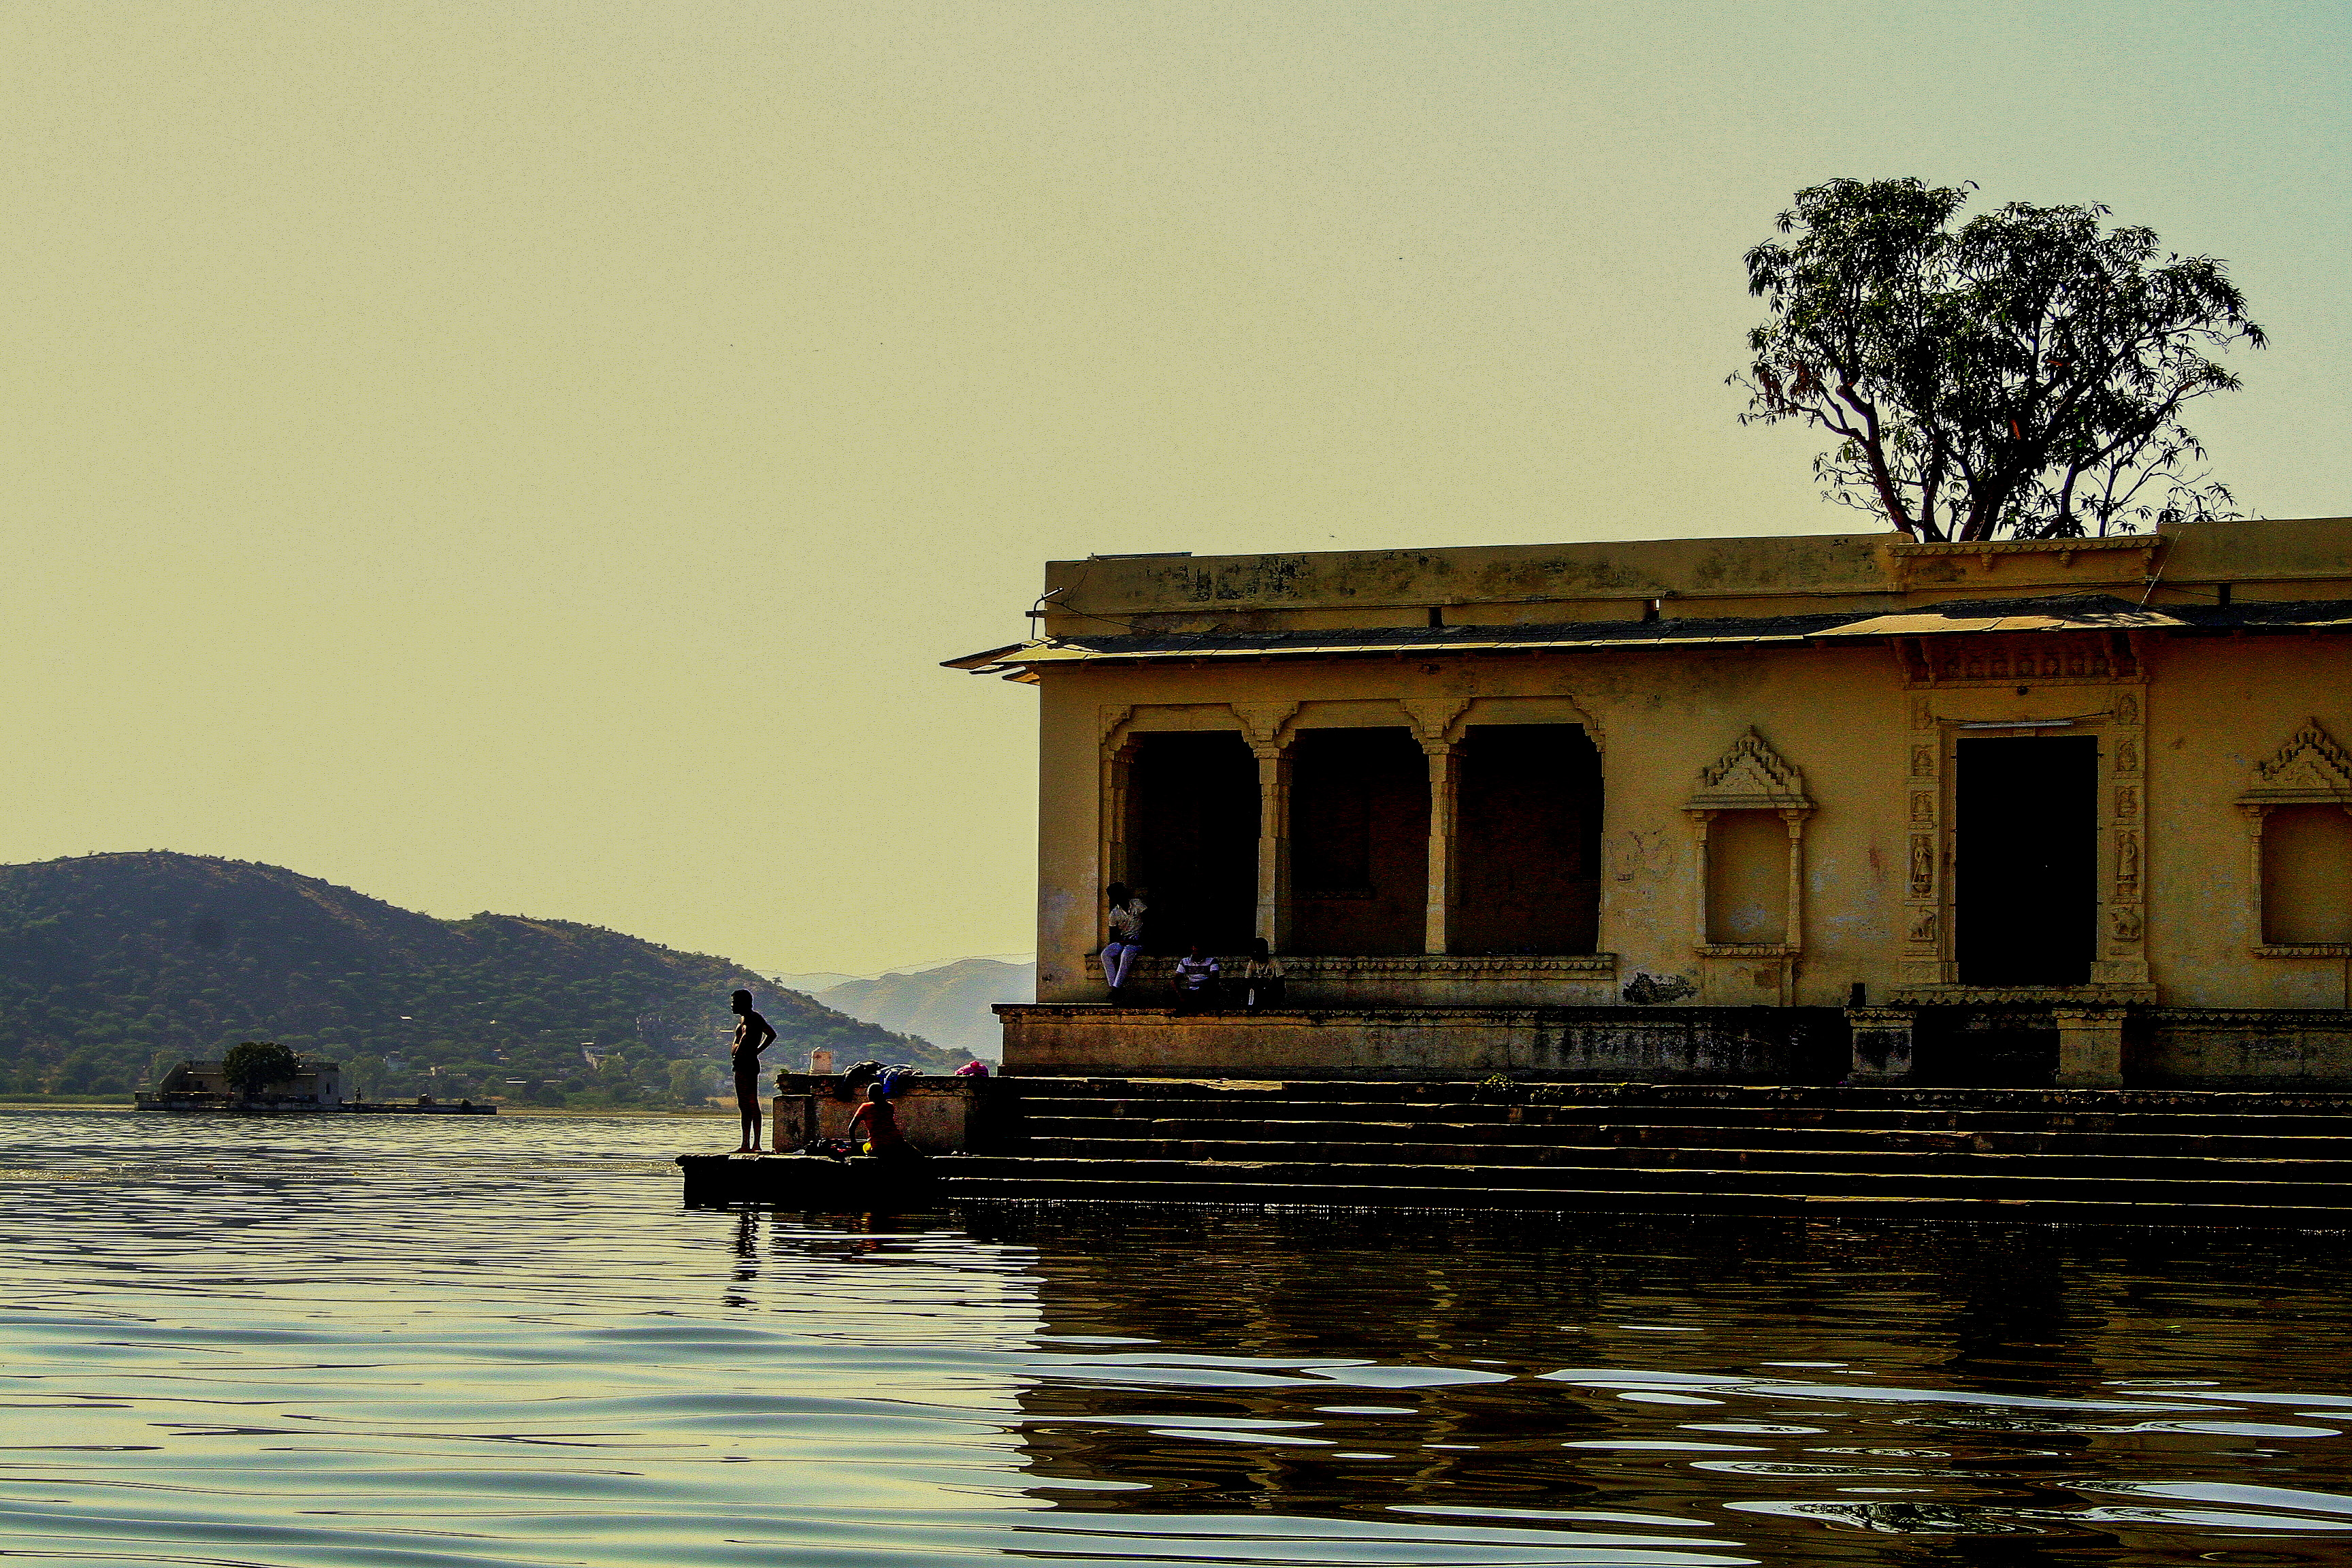 Udaipur, Rajasthan. Photo Surbhee Grover